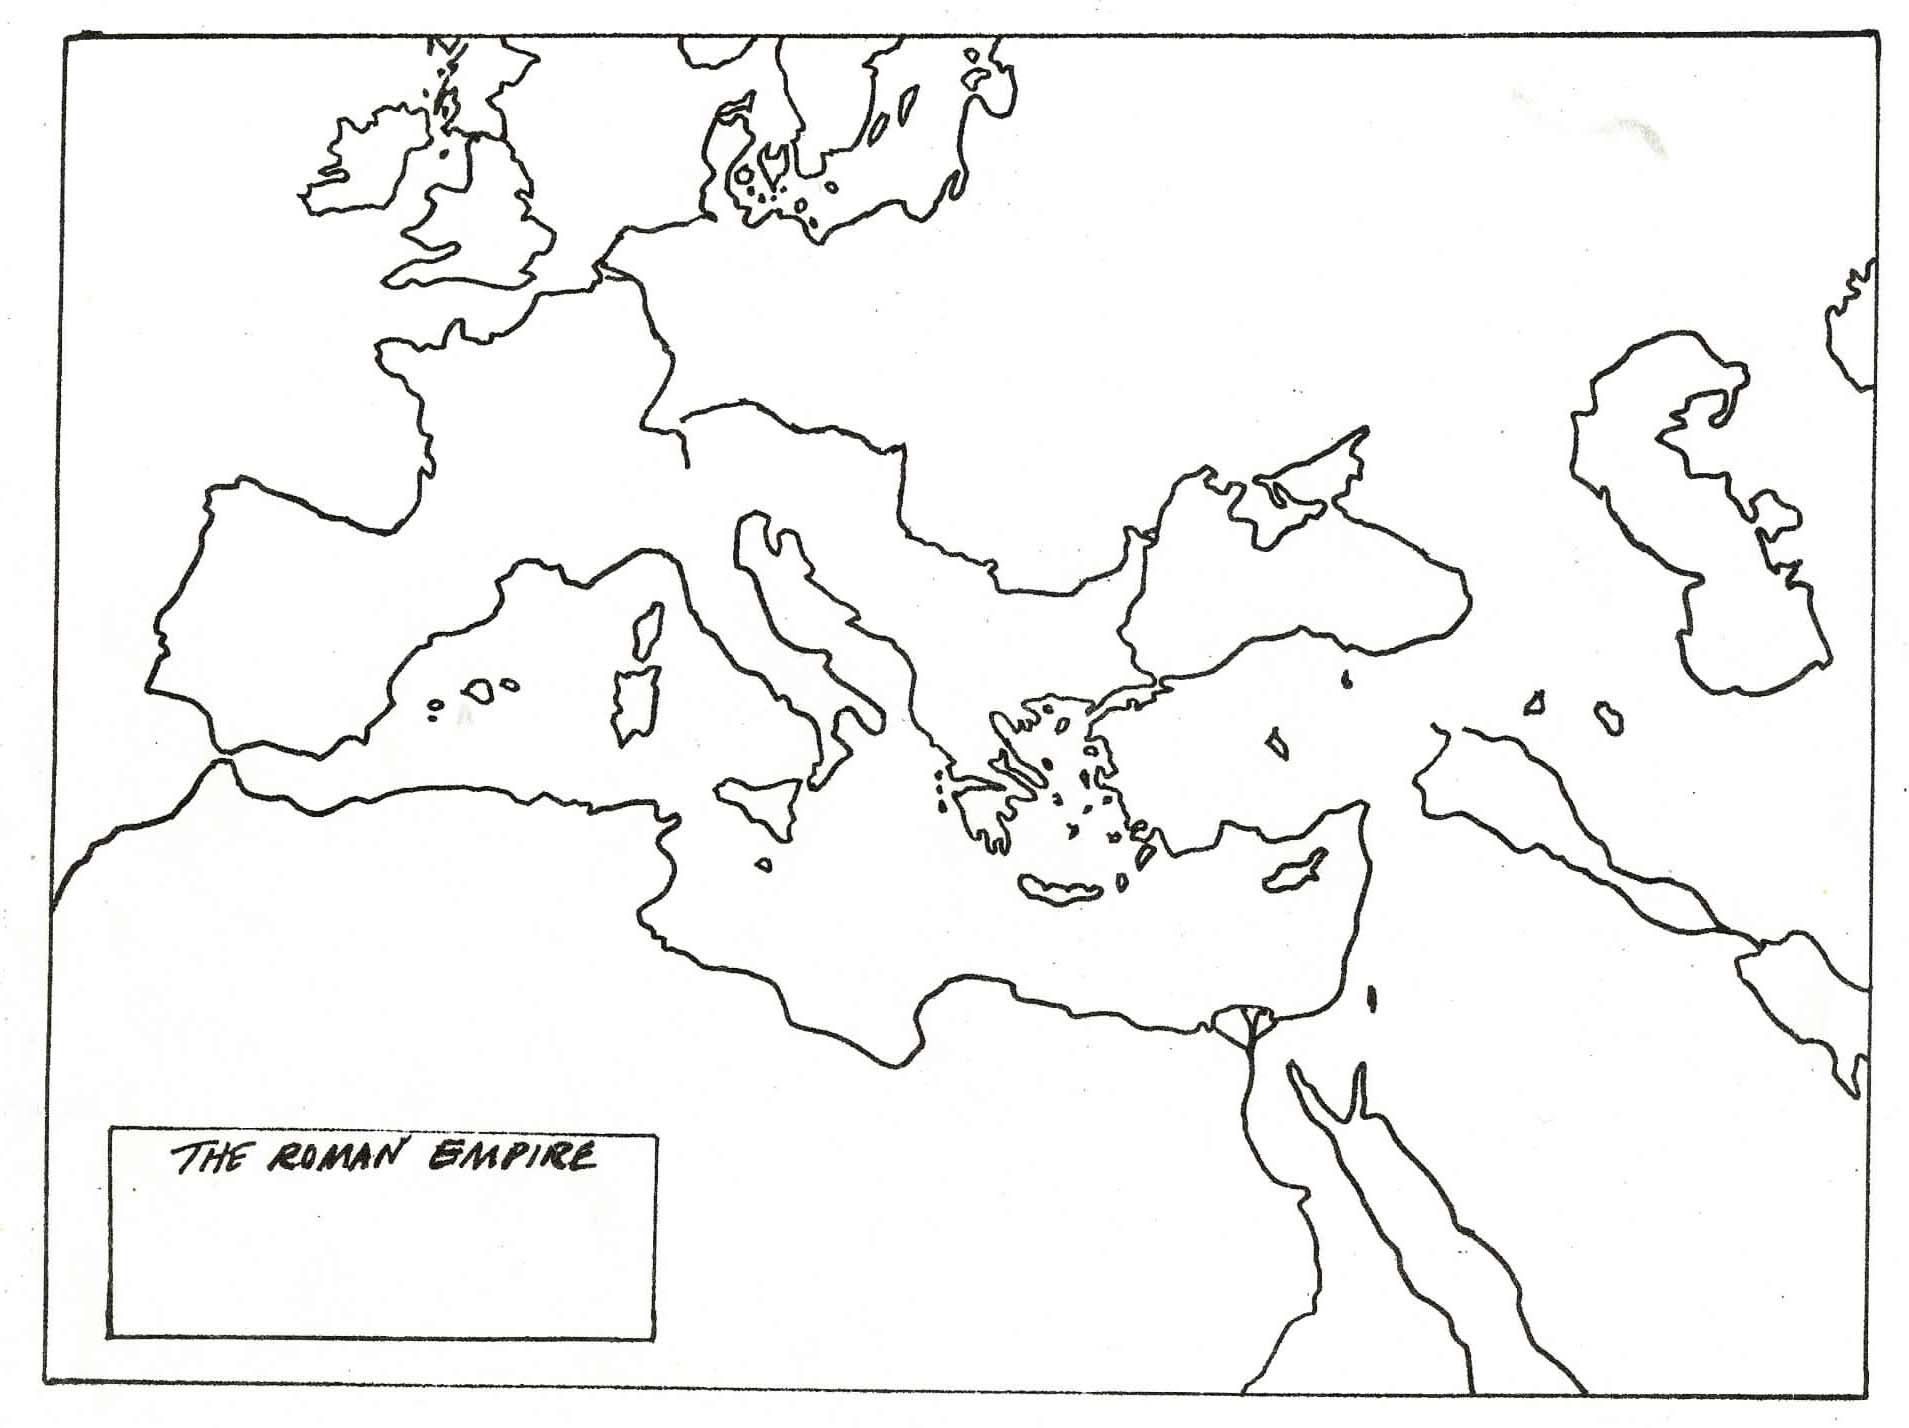 small resolution of blank map of roman empire   Ancient rome map